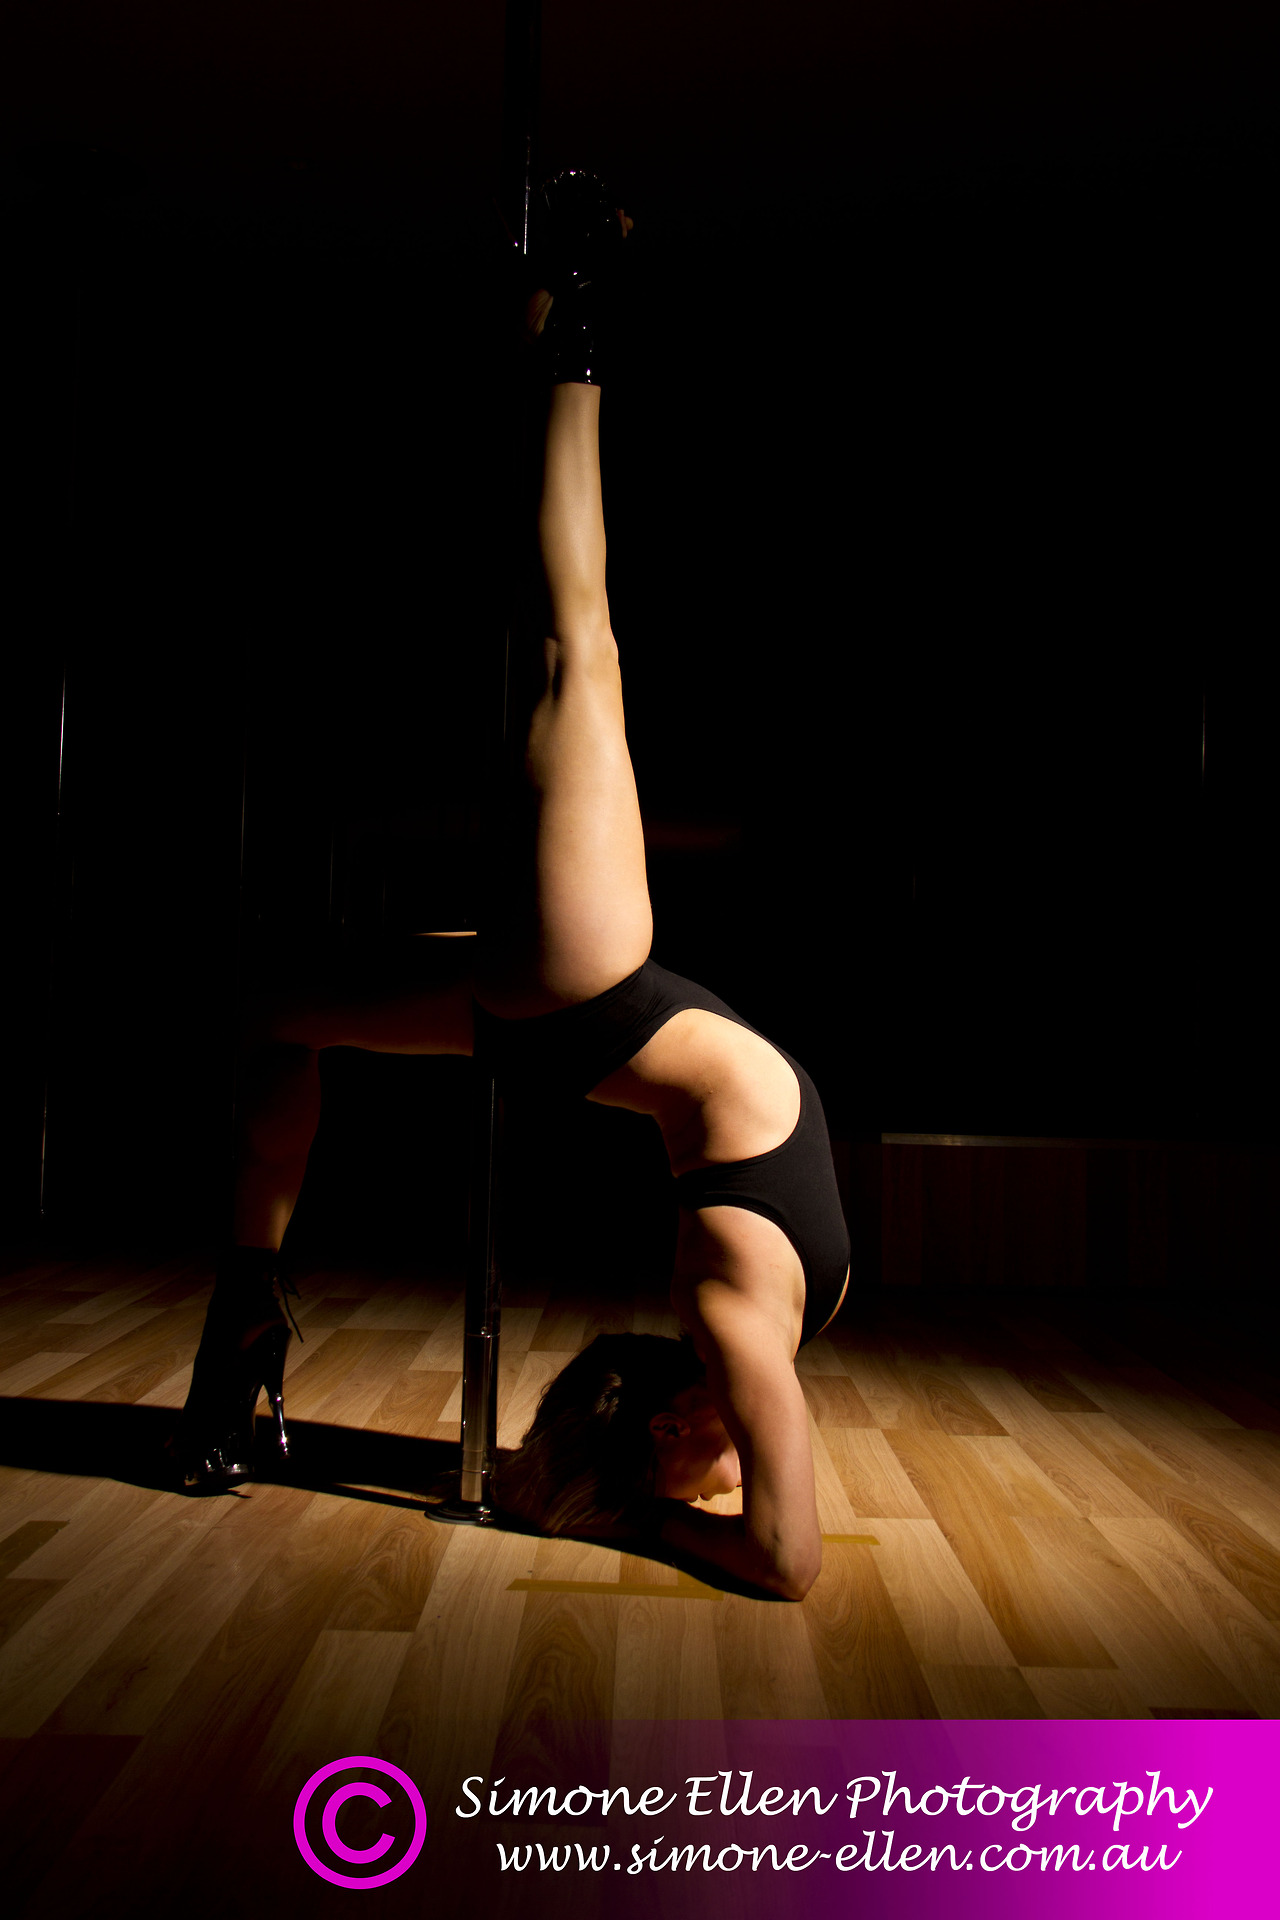 Rules for dating a pole dancer